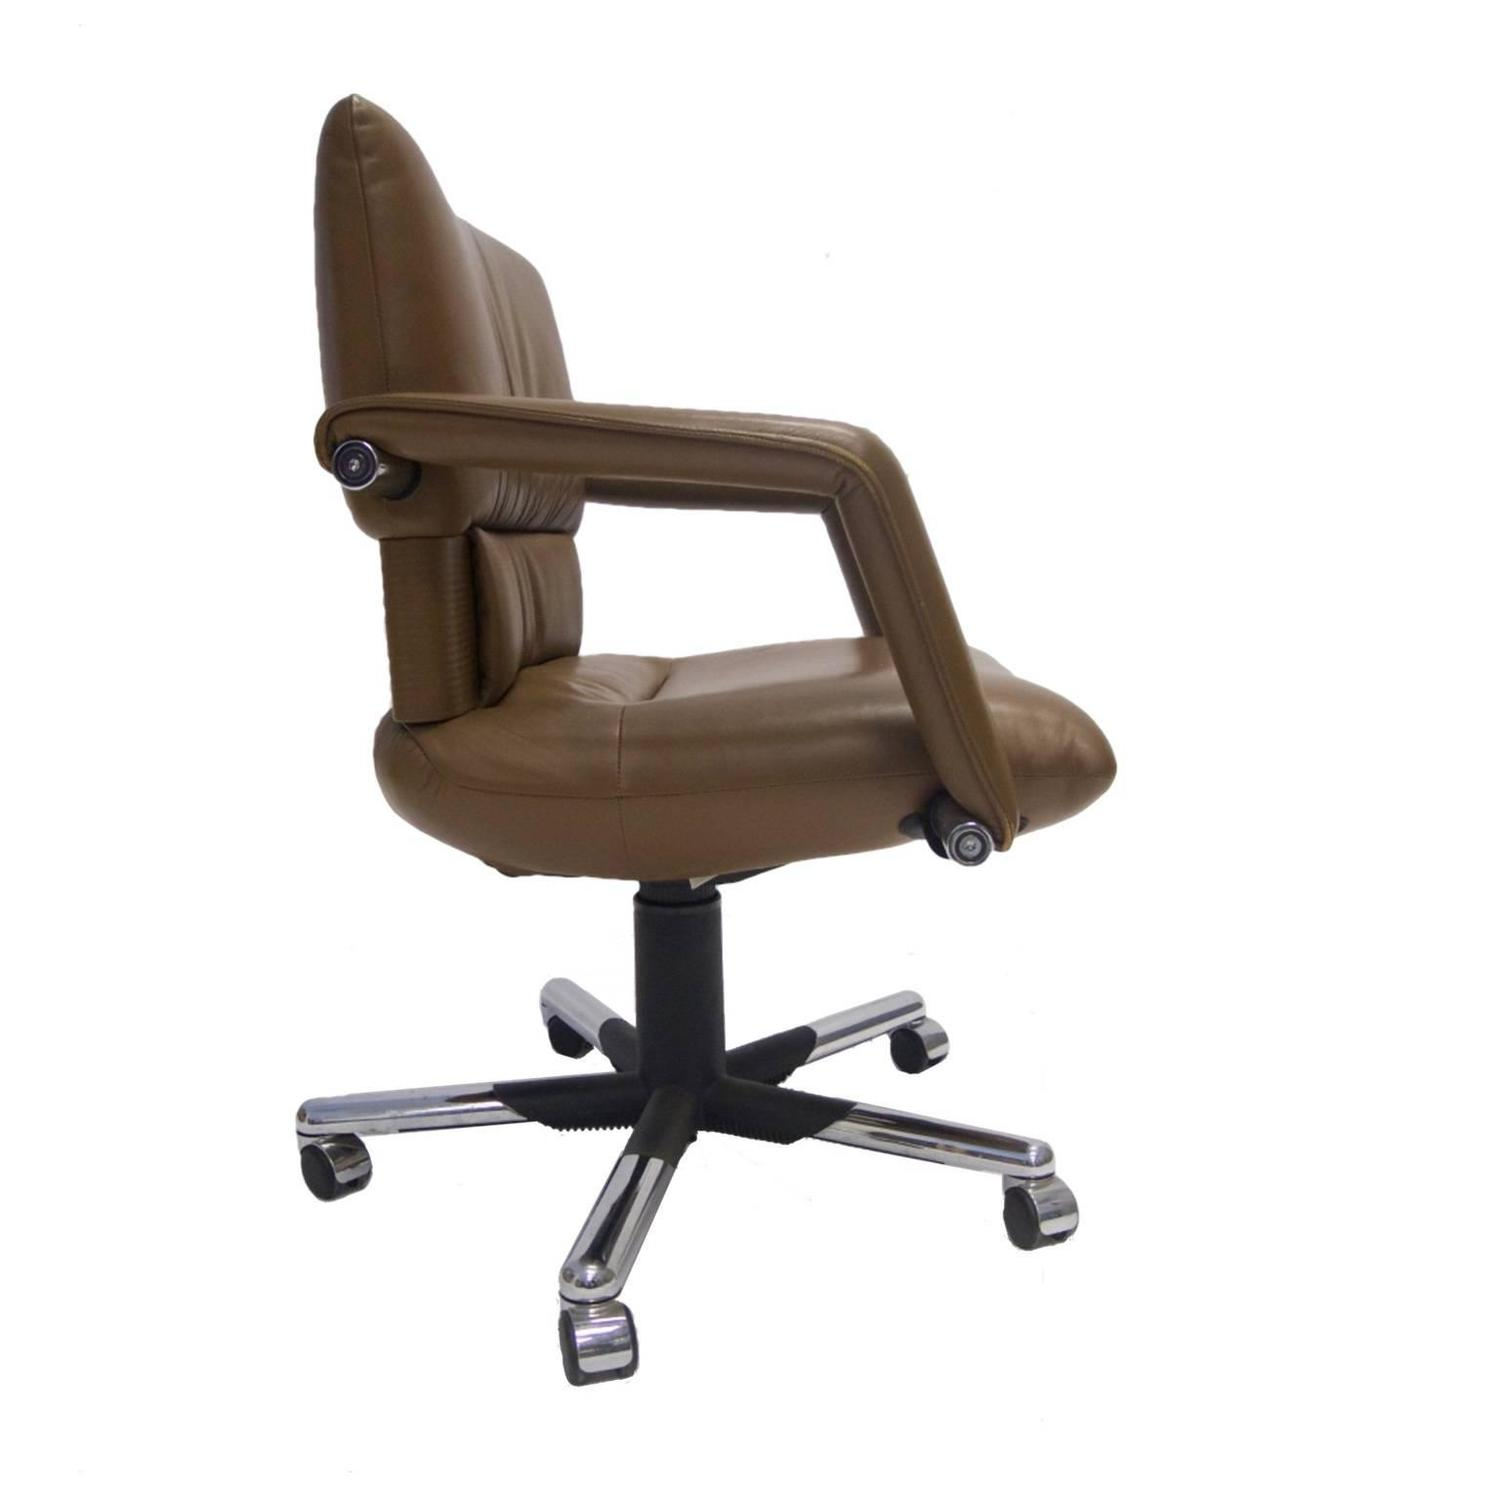 mario bellini chair folding cart for vitra leather swivel and tilt executive